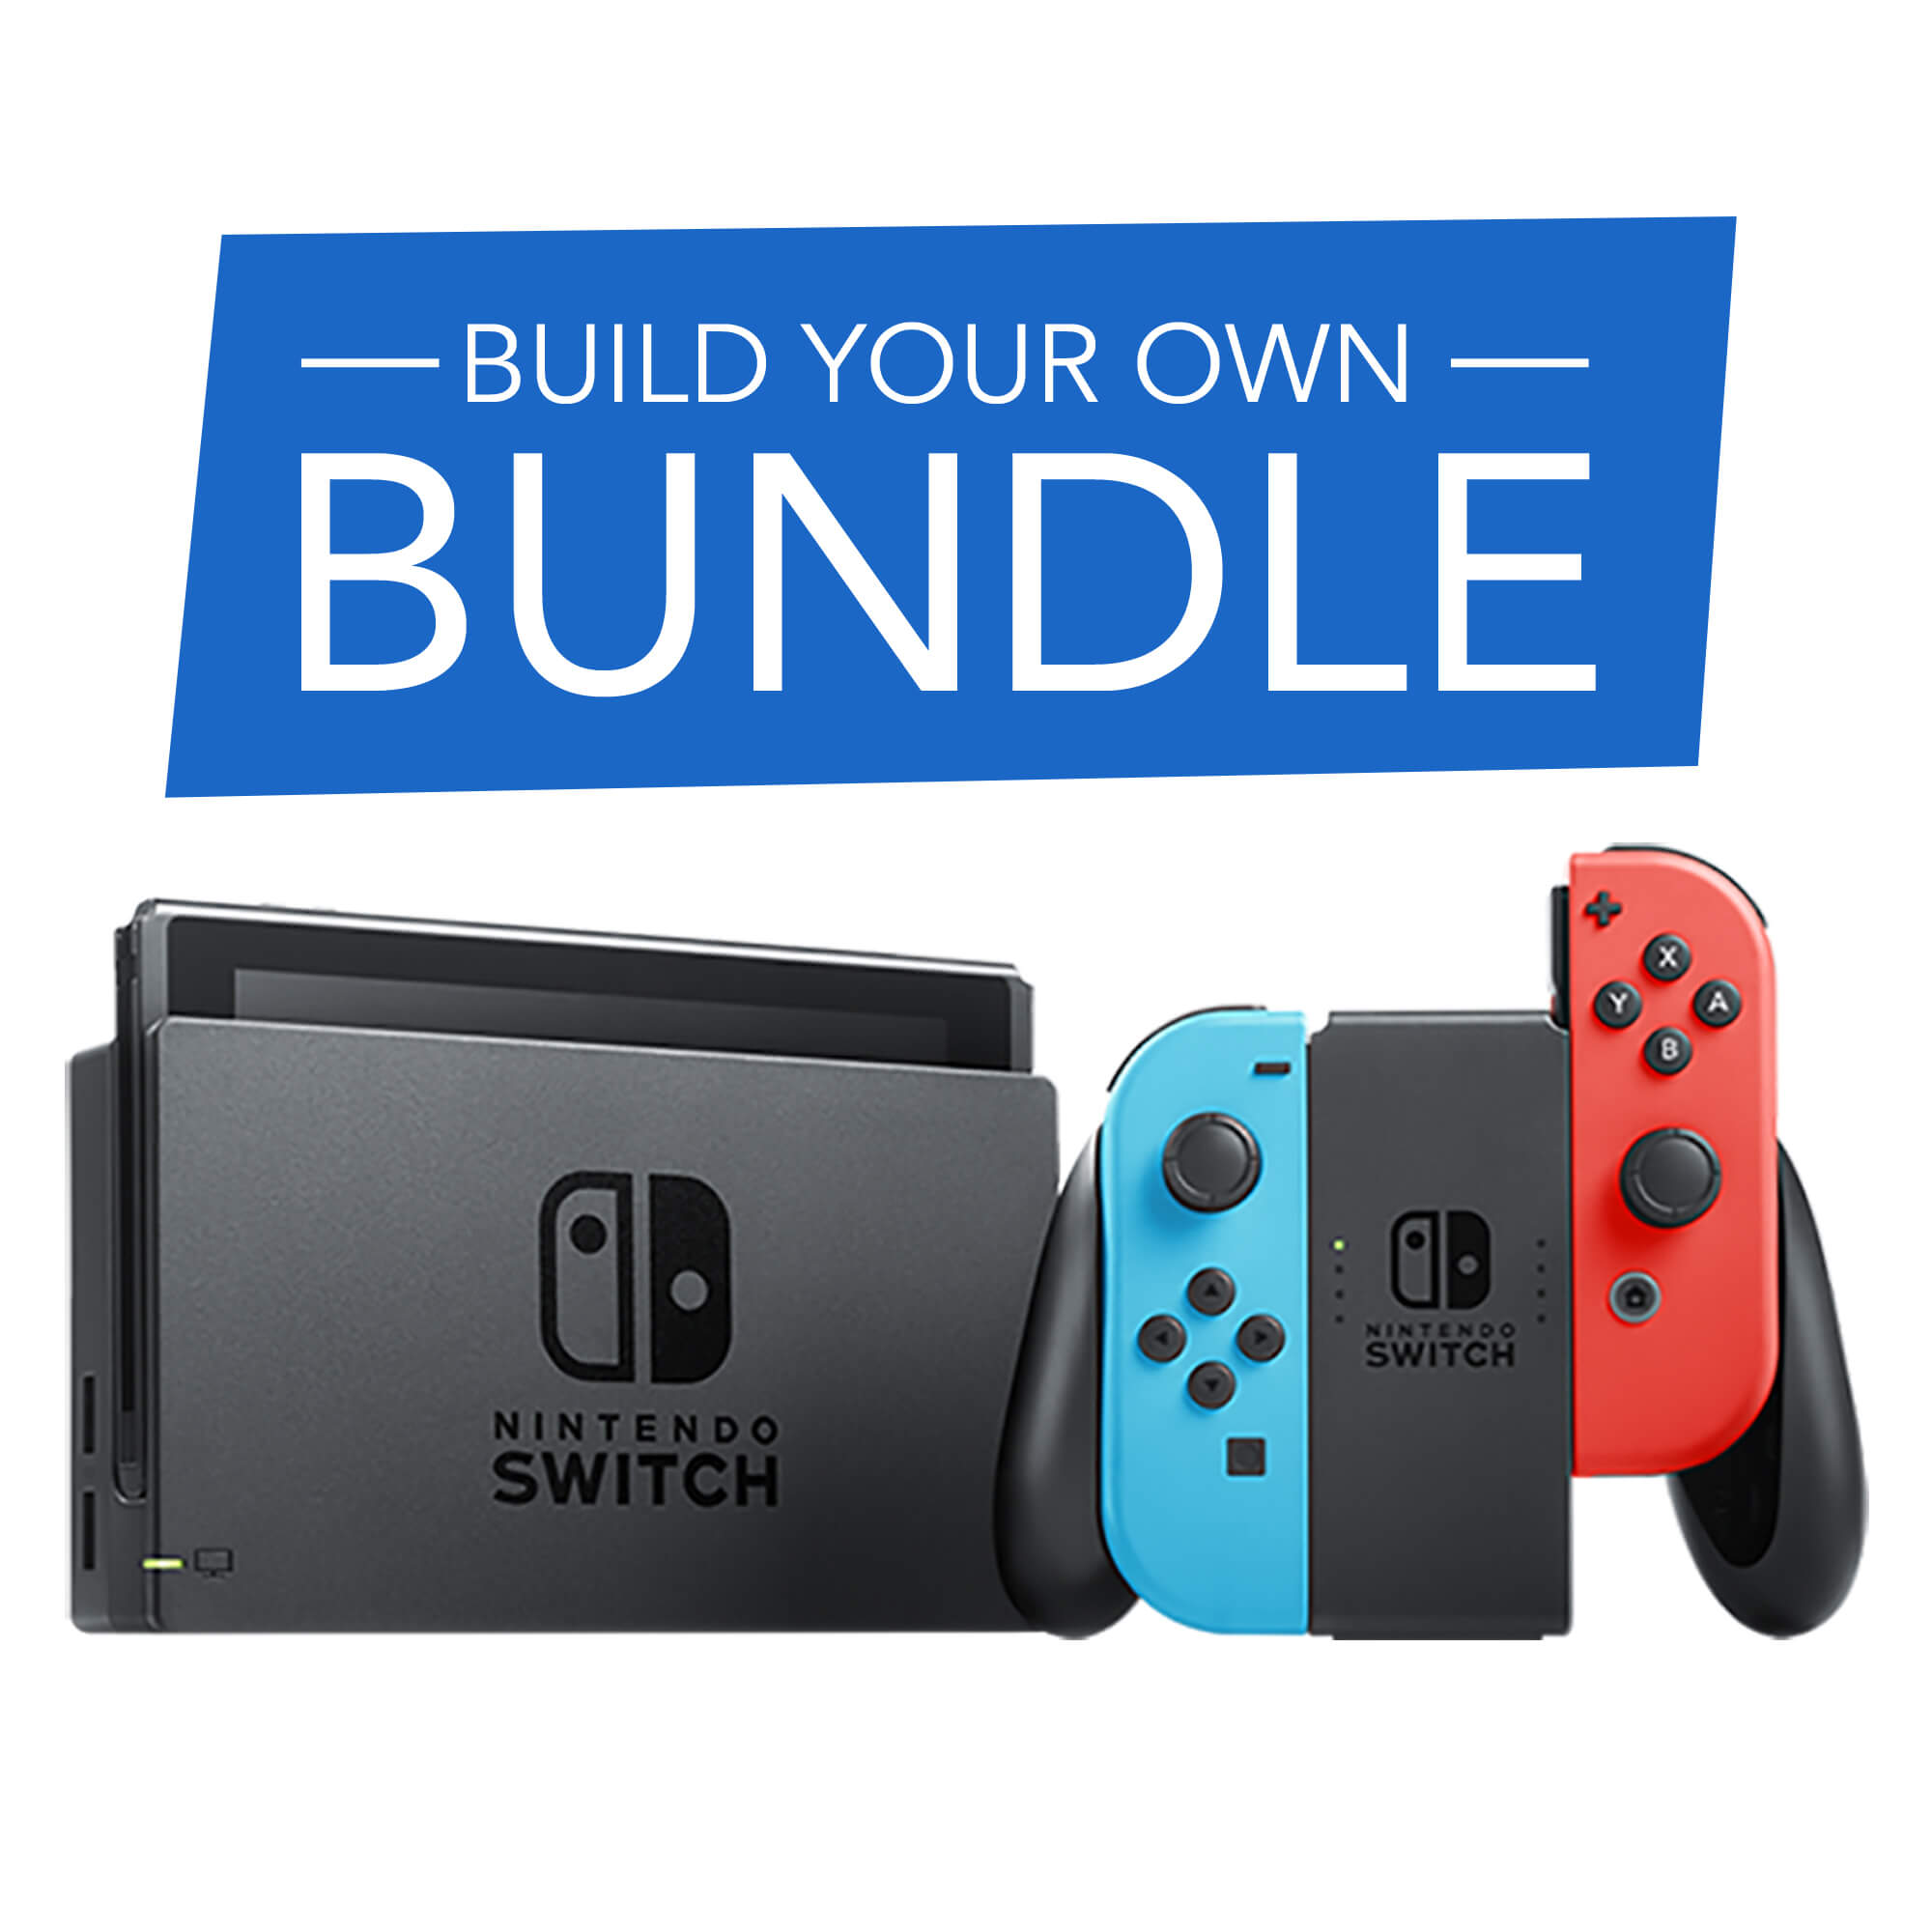 Nintendo Switch Build Your Own Bundle